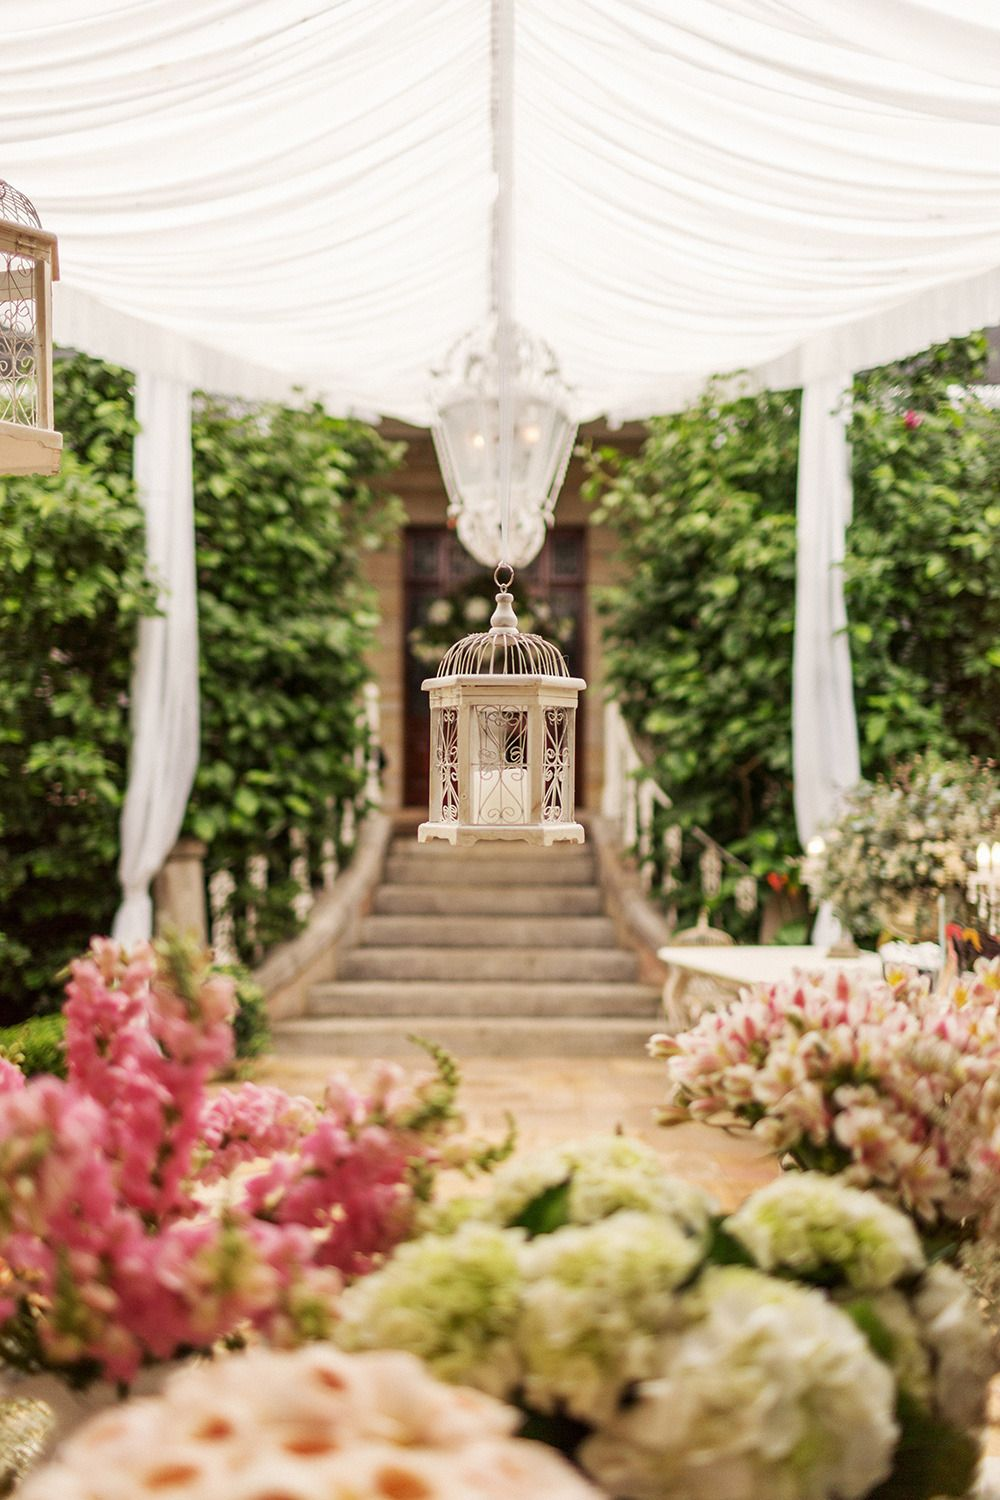 Wedding decorations outside house  Romantic Garden Wedding at the James Terrara House  Flowers I love